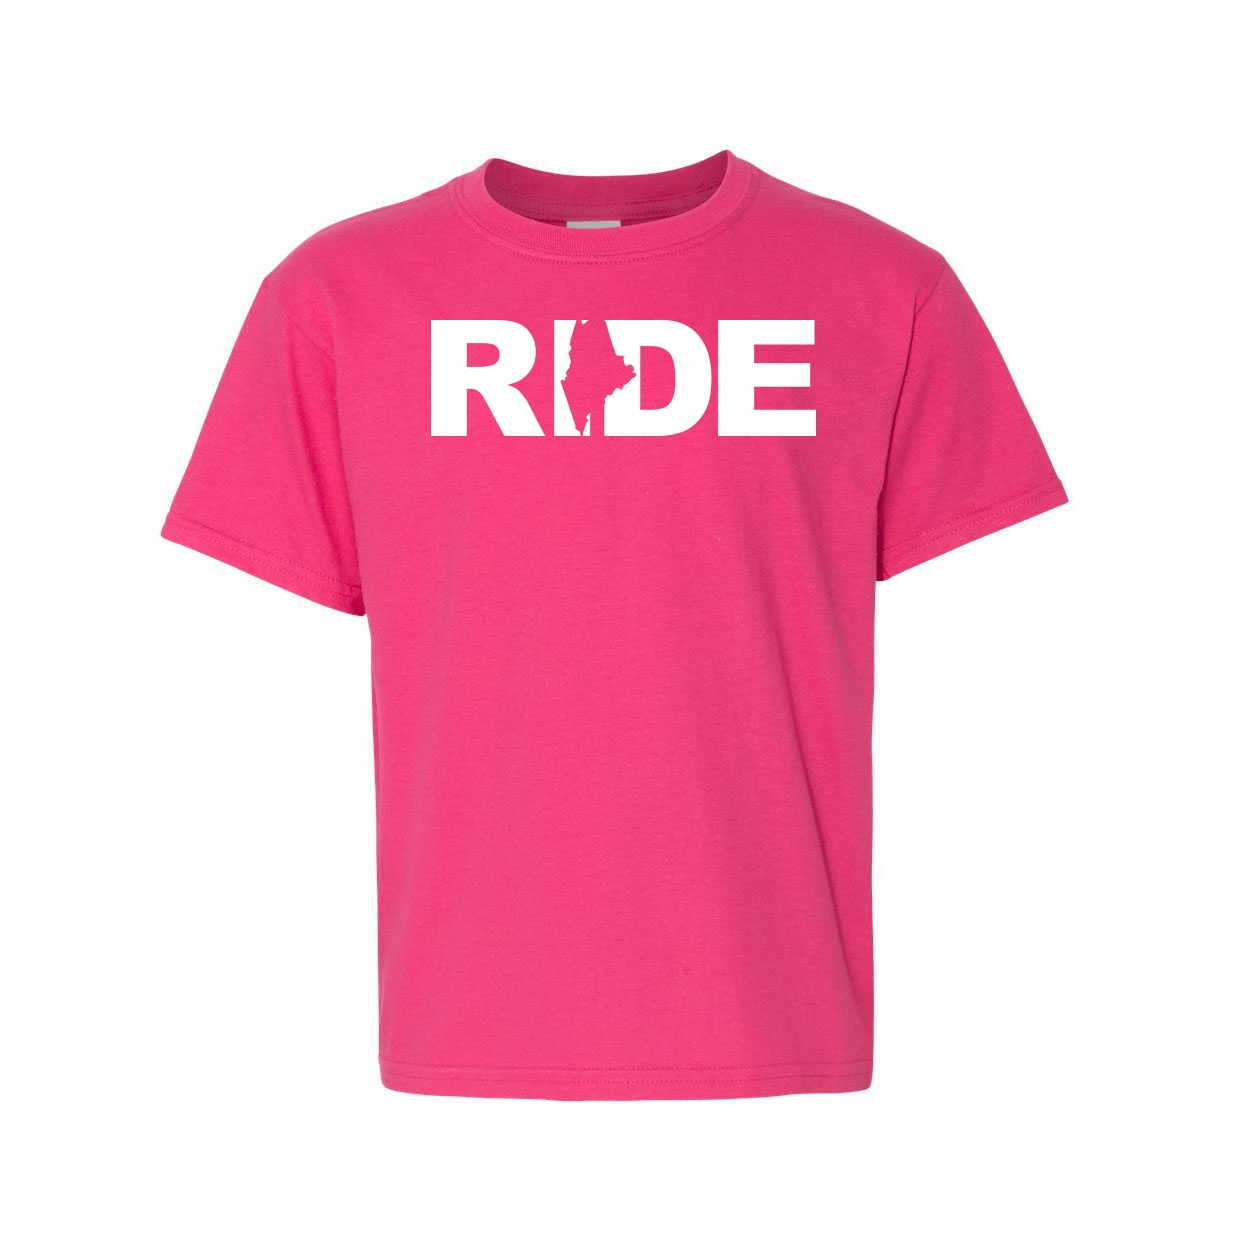 Ride Maine Classic Youth T-Shirt Pink (White Logo)